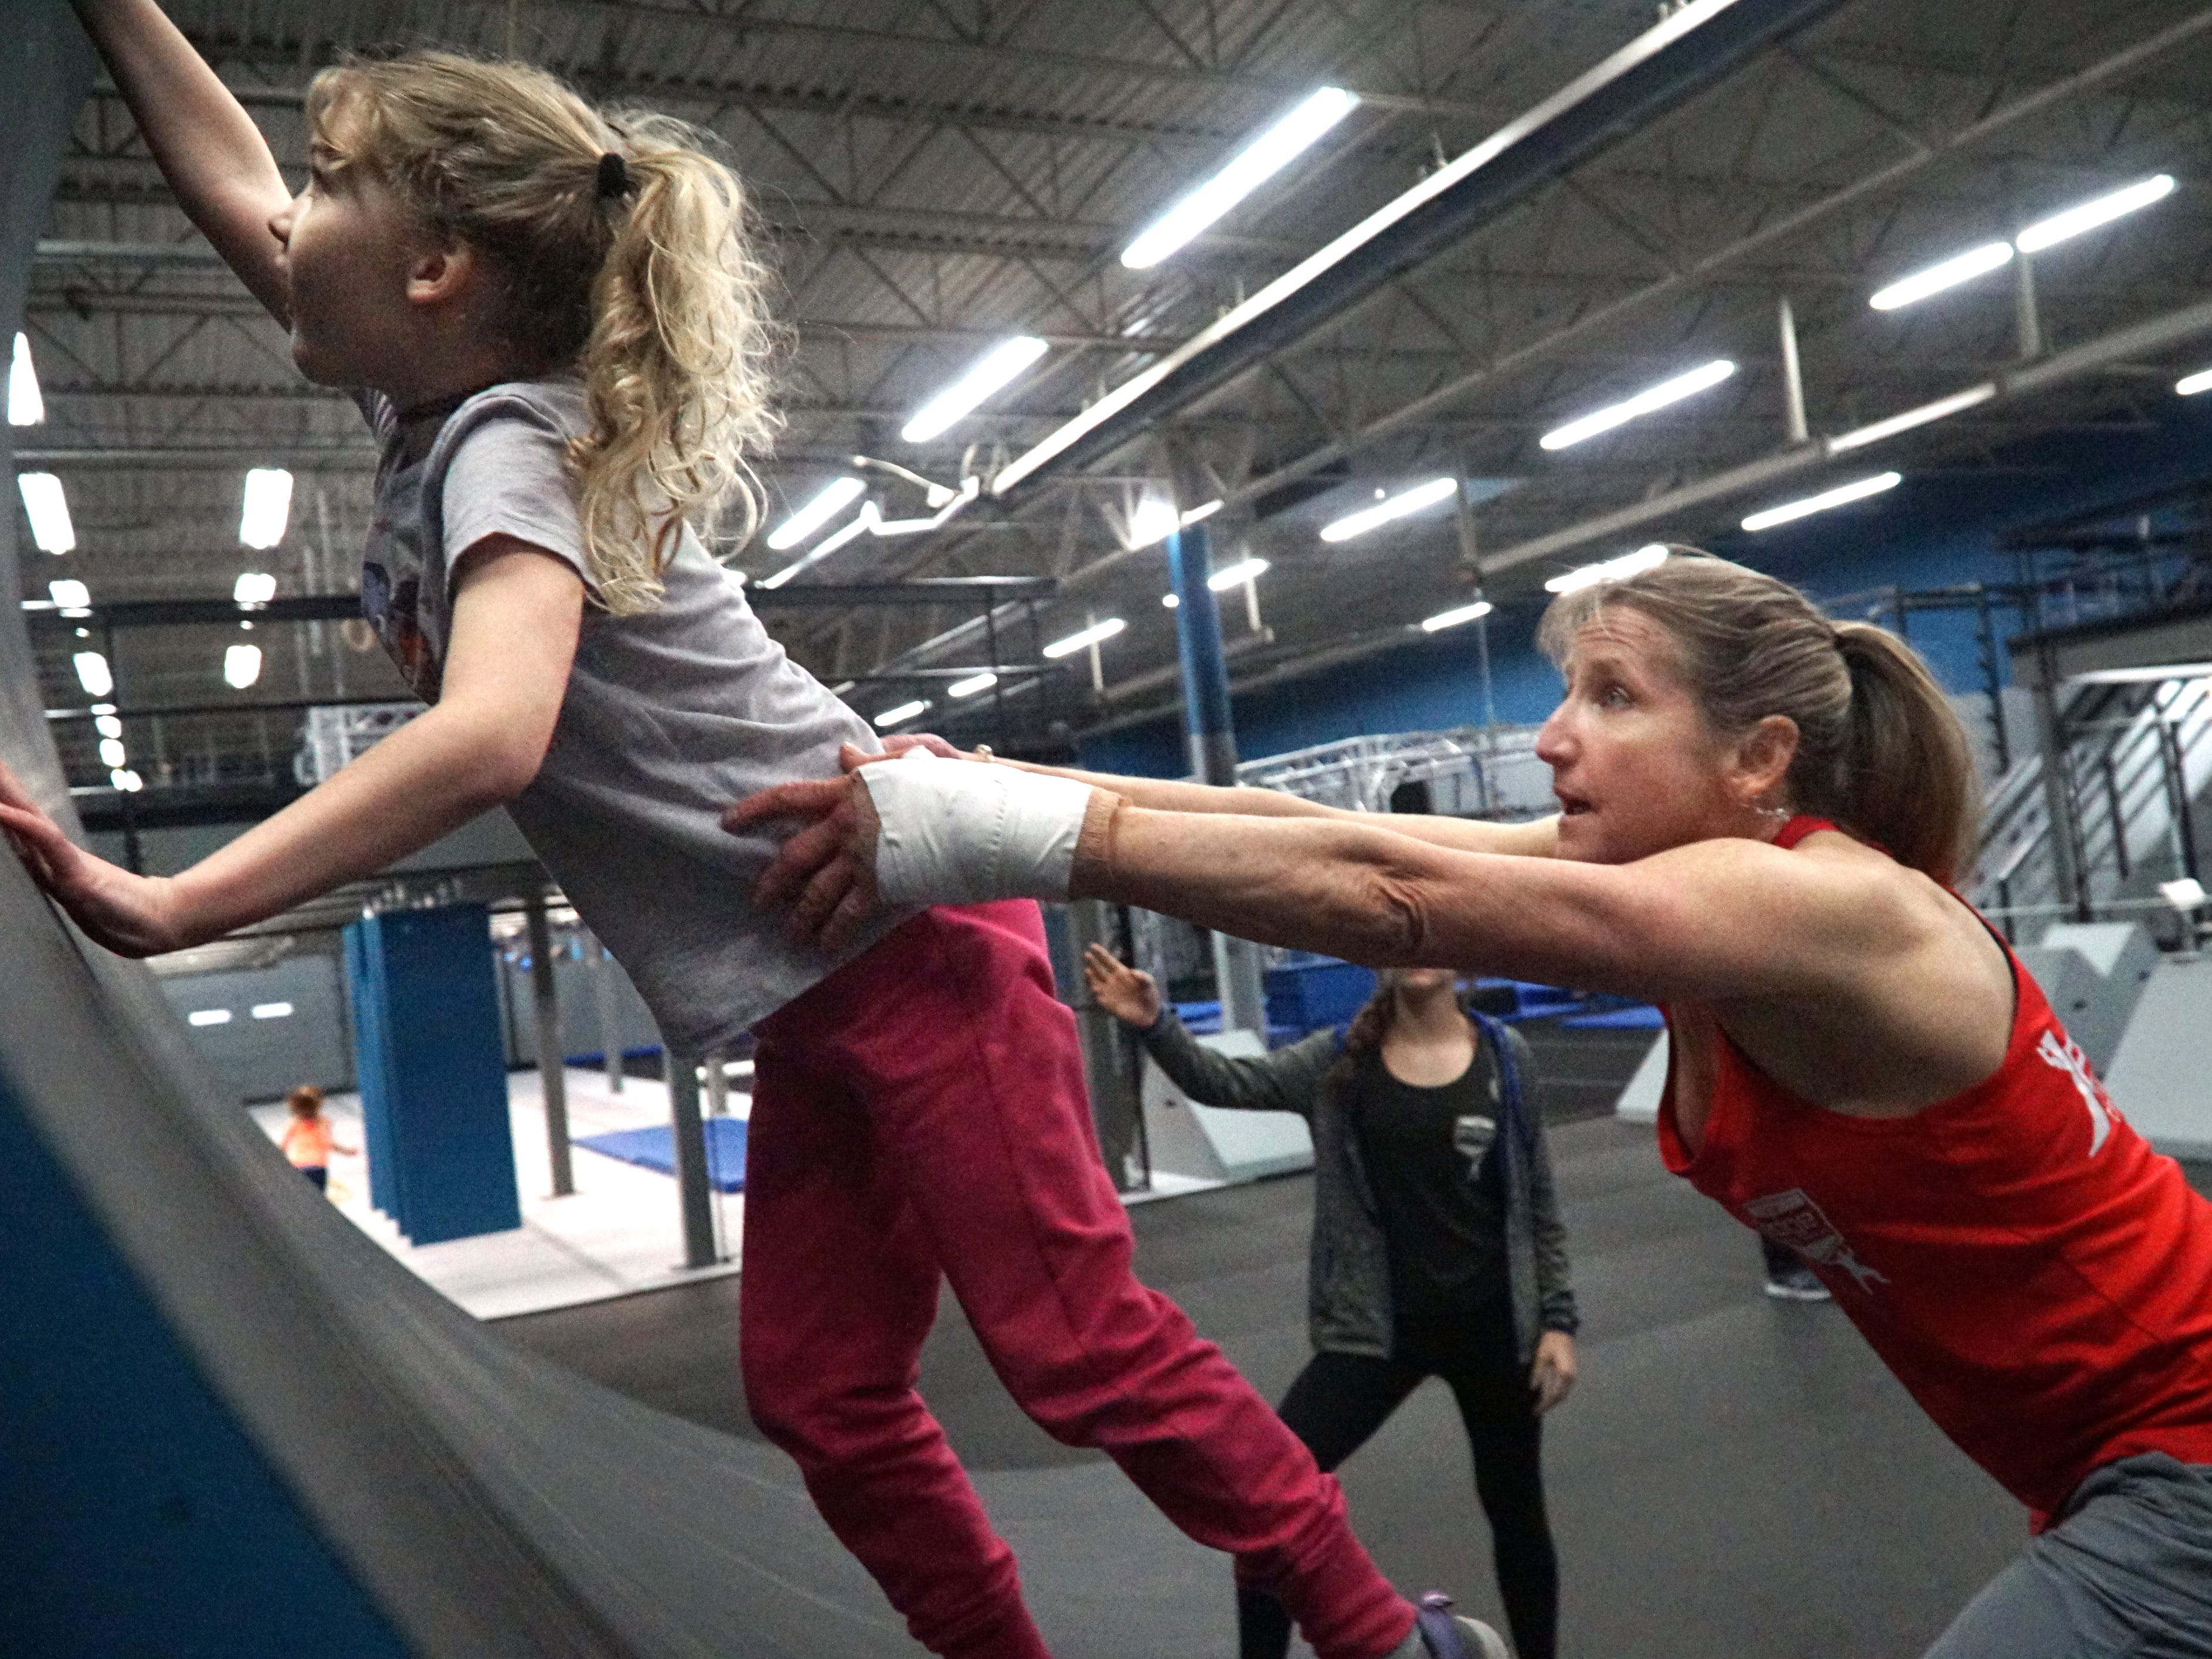 Carey Sherbrooke, right, gives a small boost to student Morgan Hudya - as the youngster tries to run up the gym's curved wall on March 12 at the Edge Training Center in Plymouth.